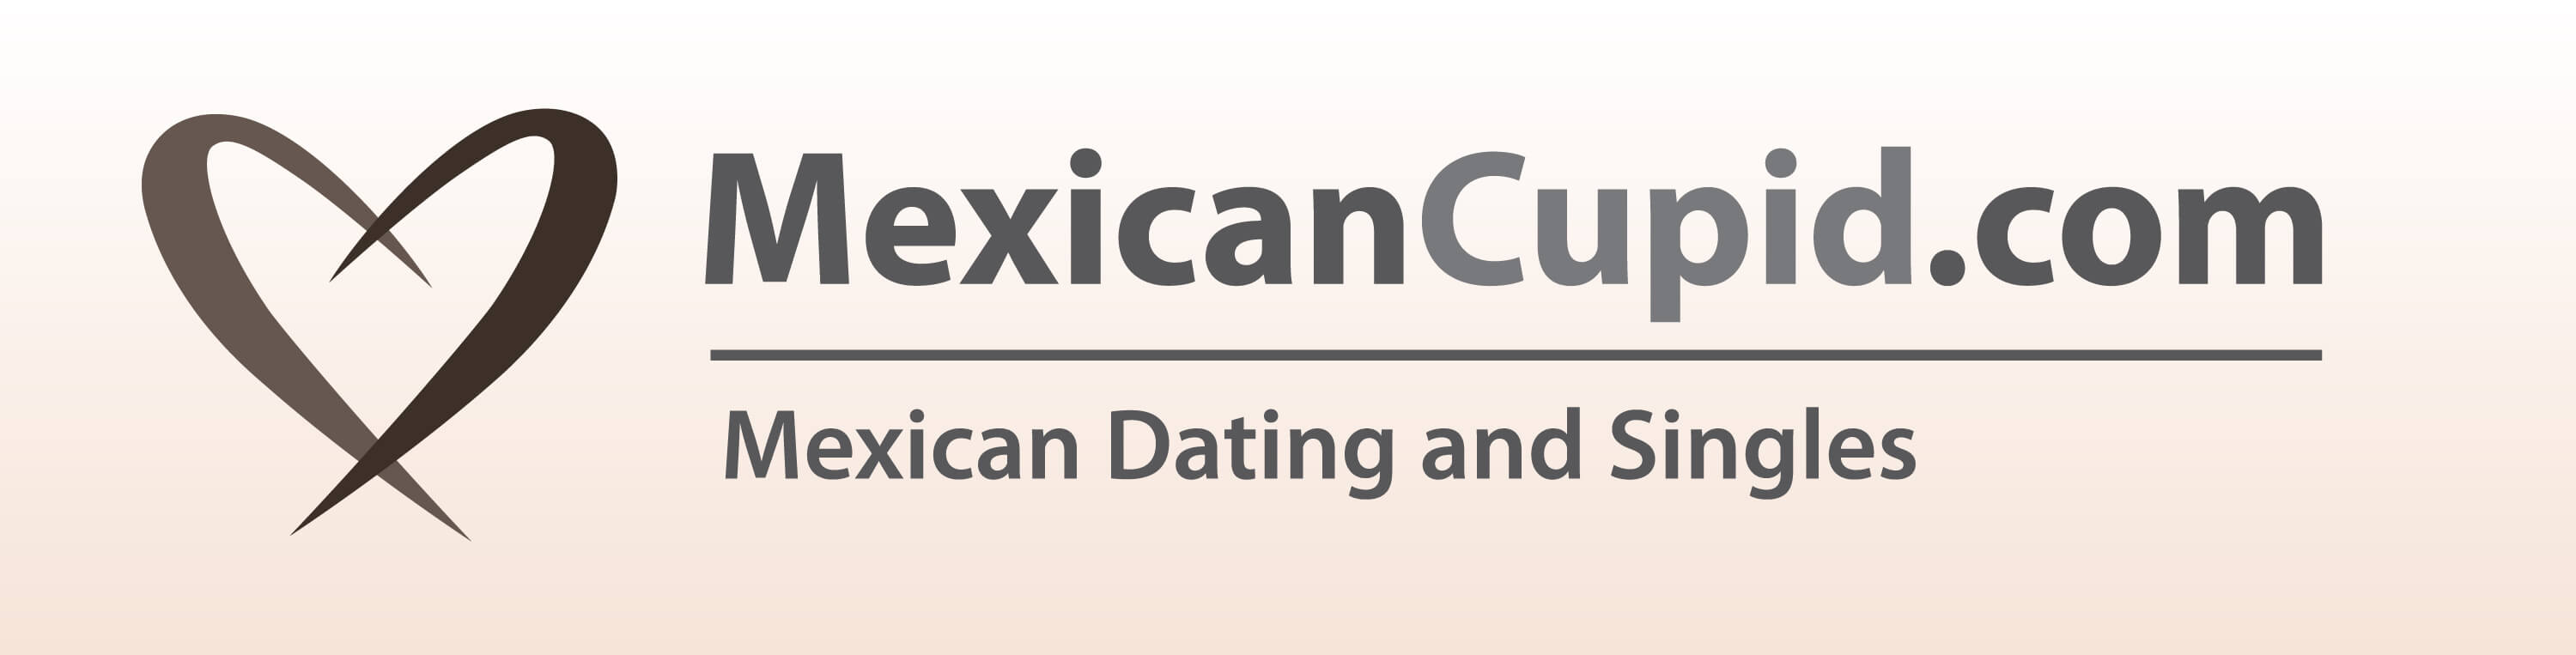 MexicanCupid